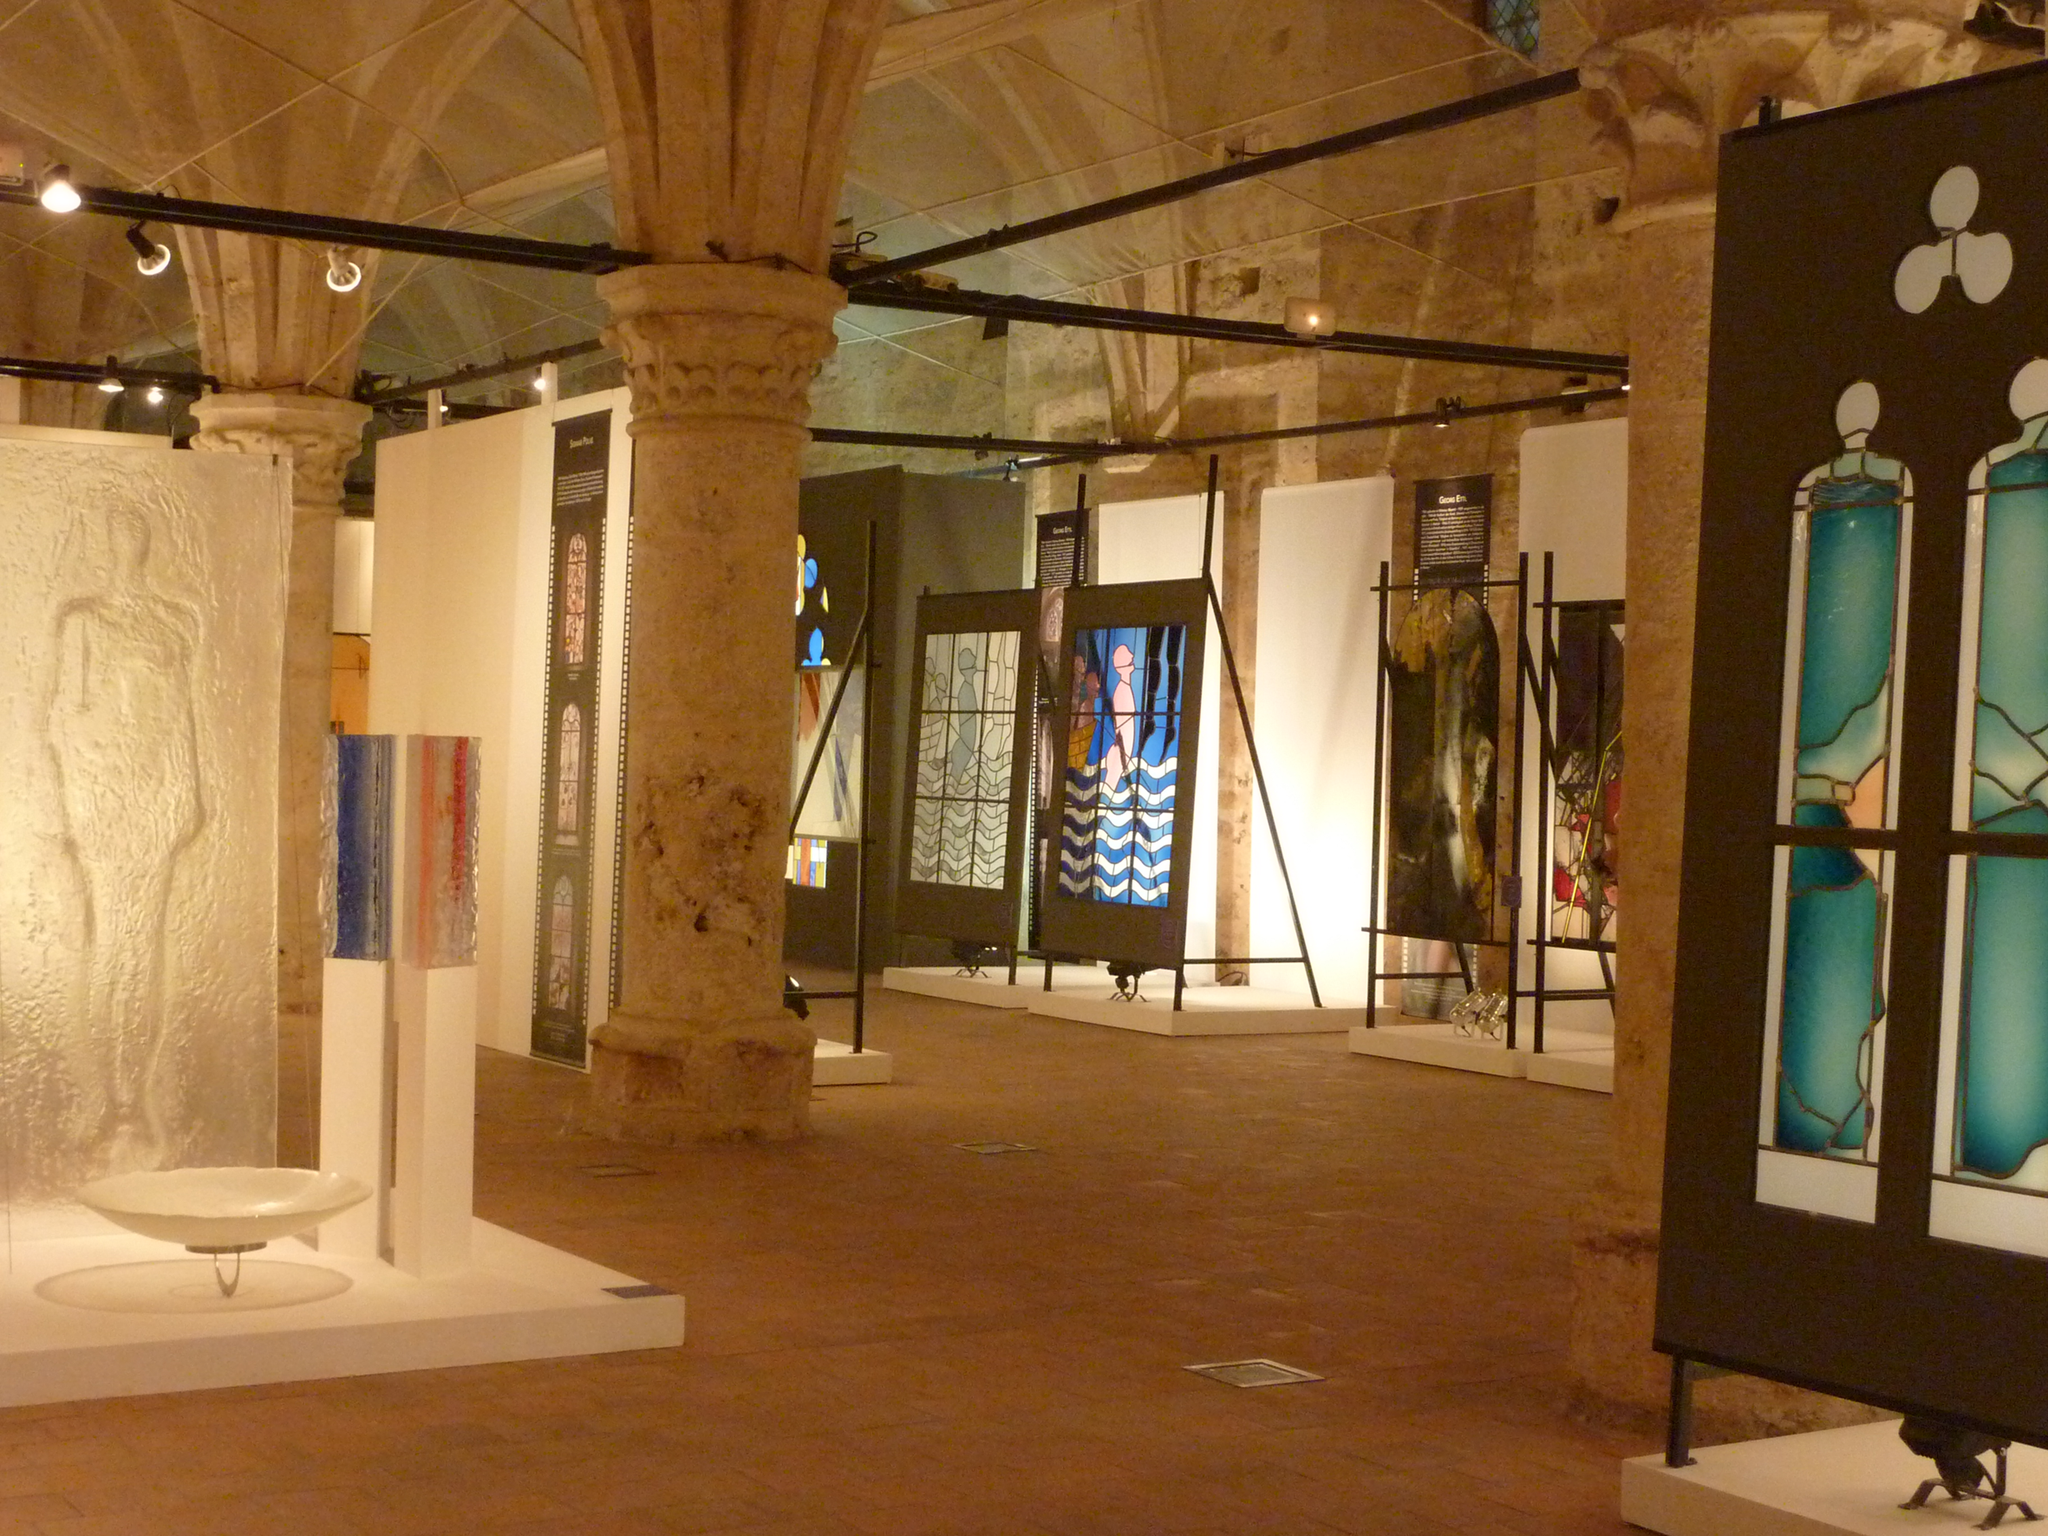 Exhibition Chartres, France 2014 - Photo Renatae Ettl